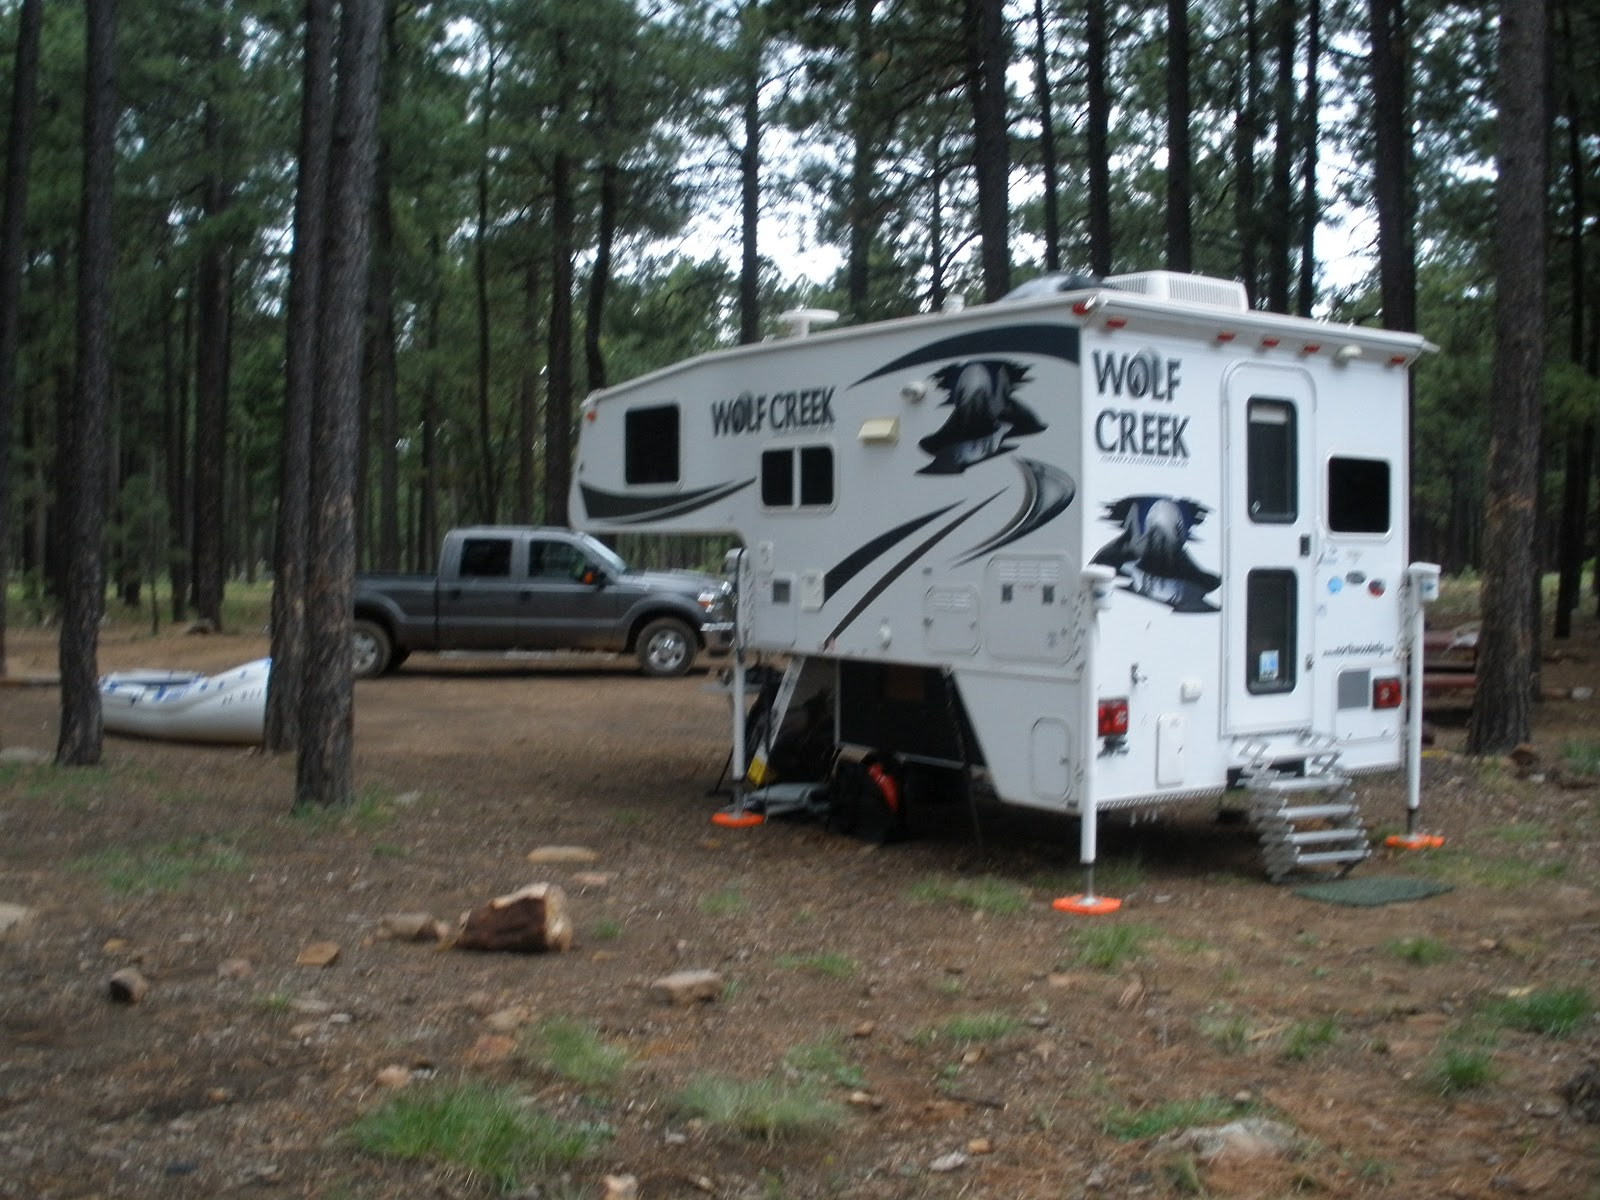 Arizonas rim lakes sitgreaves national forest truck camper adventure boondocking near woods canyon lake publicscrutiny Choice Image